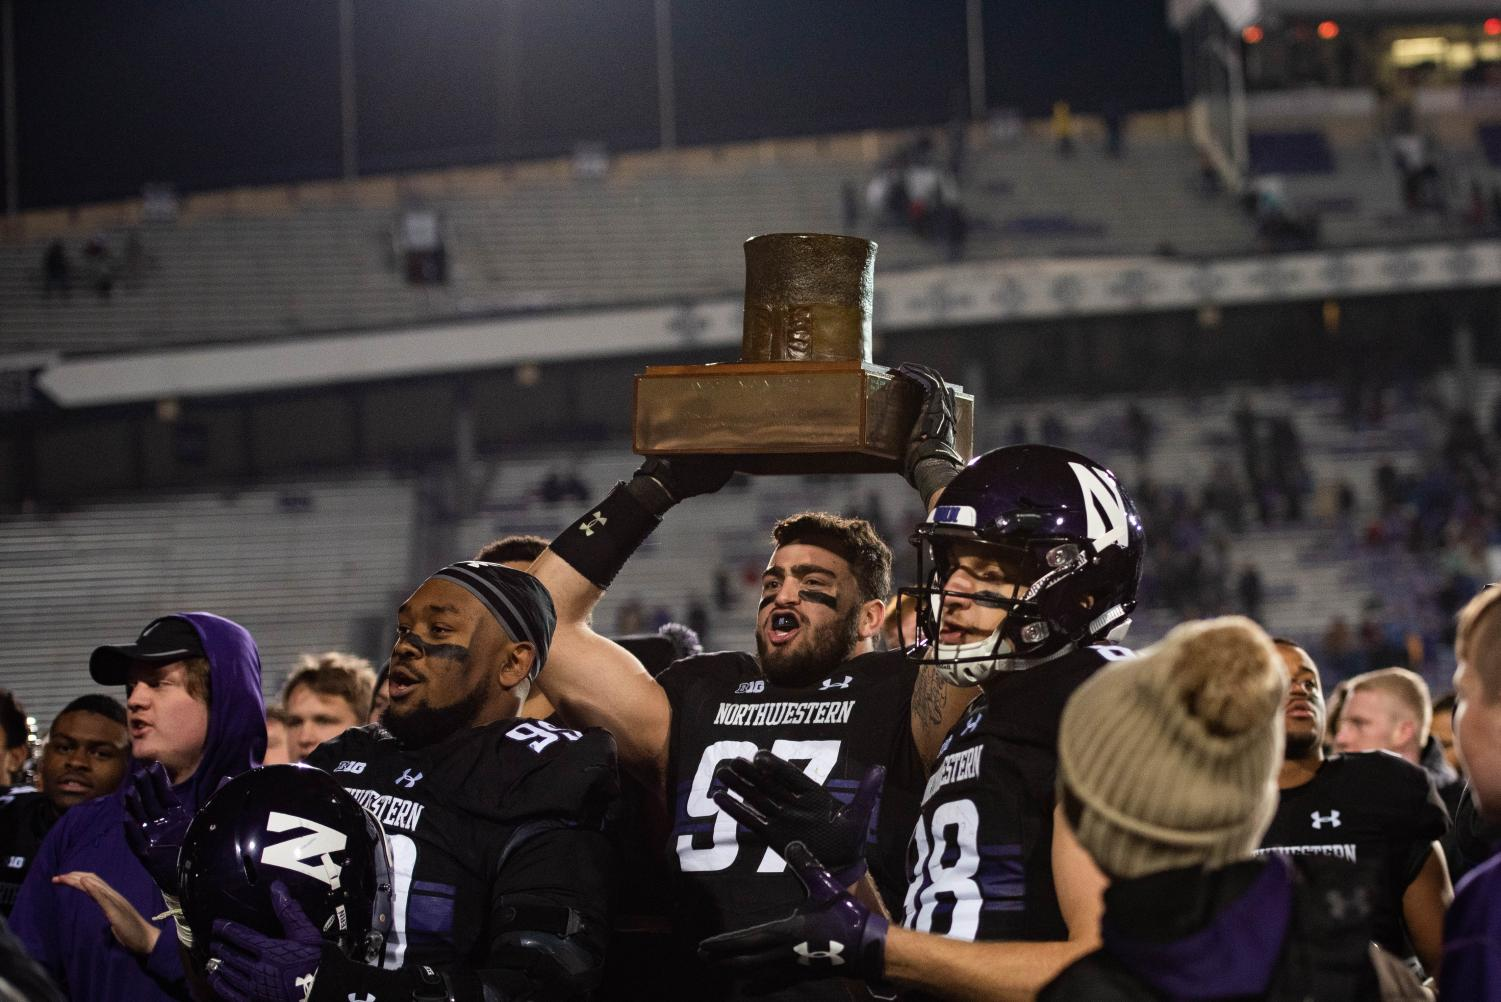 The Wildcats hoist the Land of Lincoln Trophy after beating Illinois in 2018.